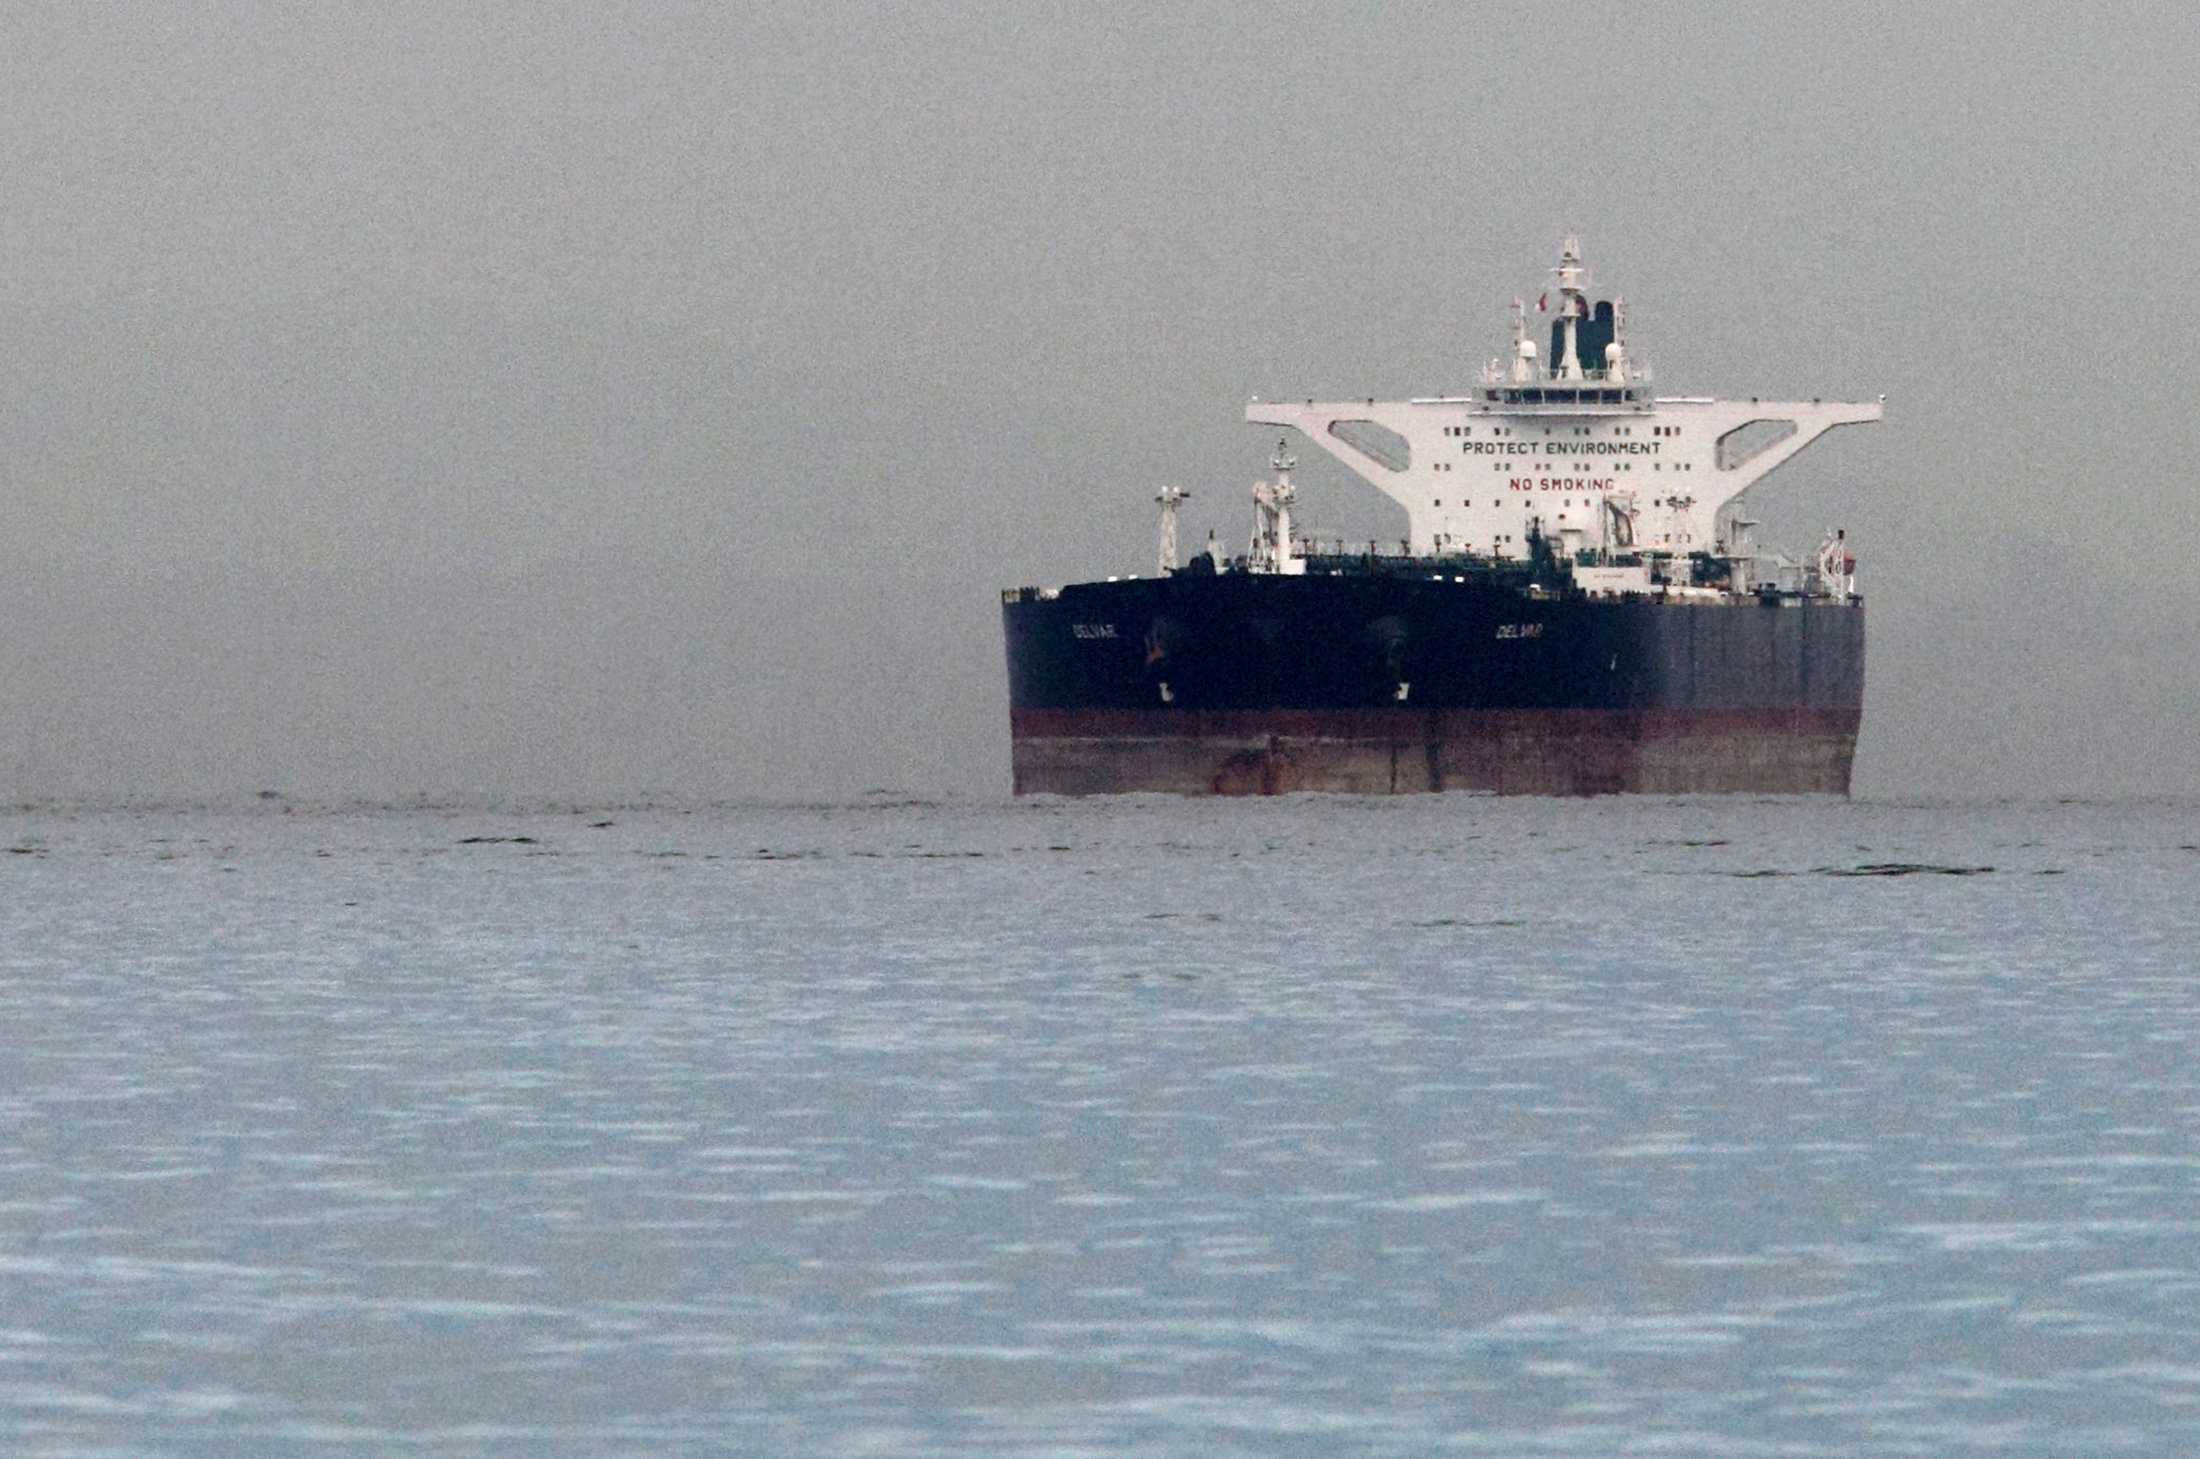 India allows state refiners to use Iran tankers for oil imports